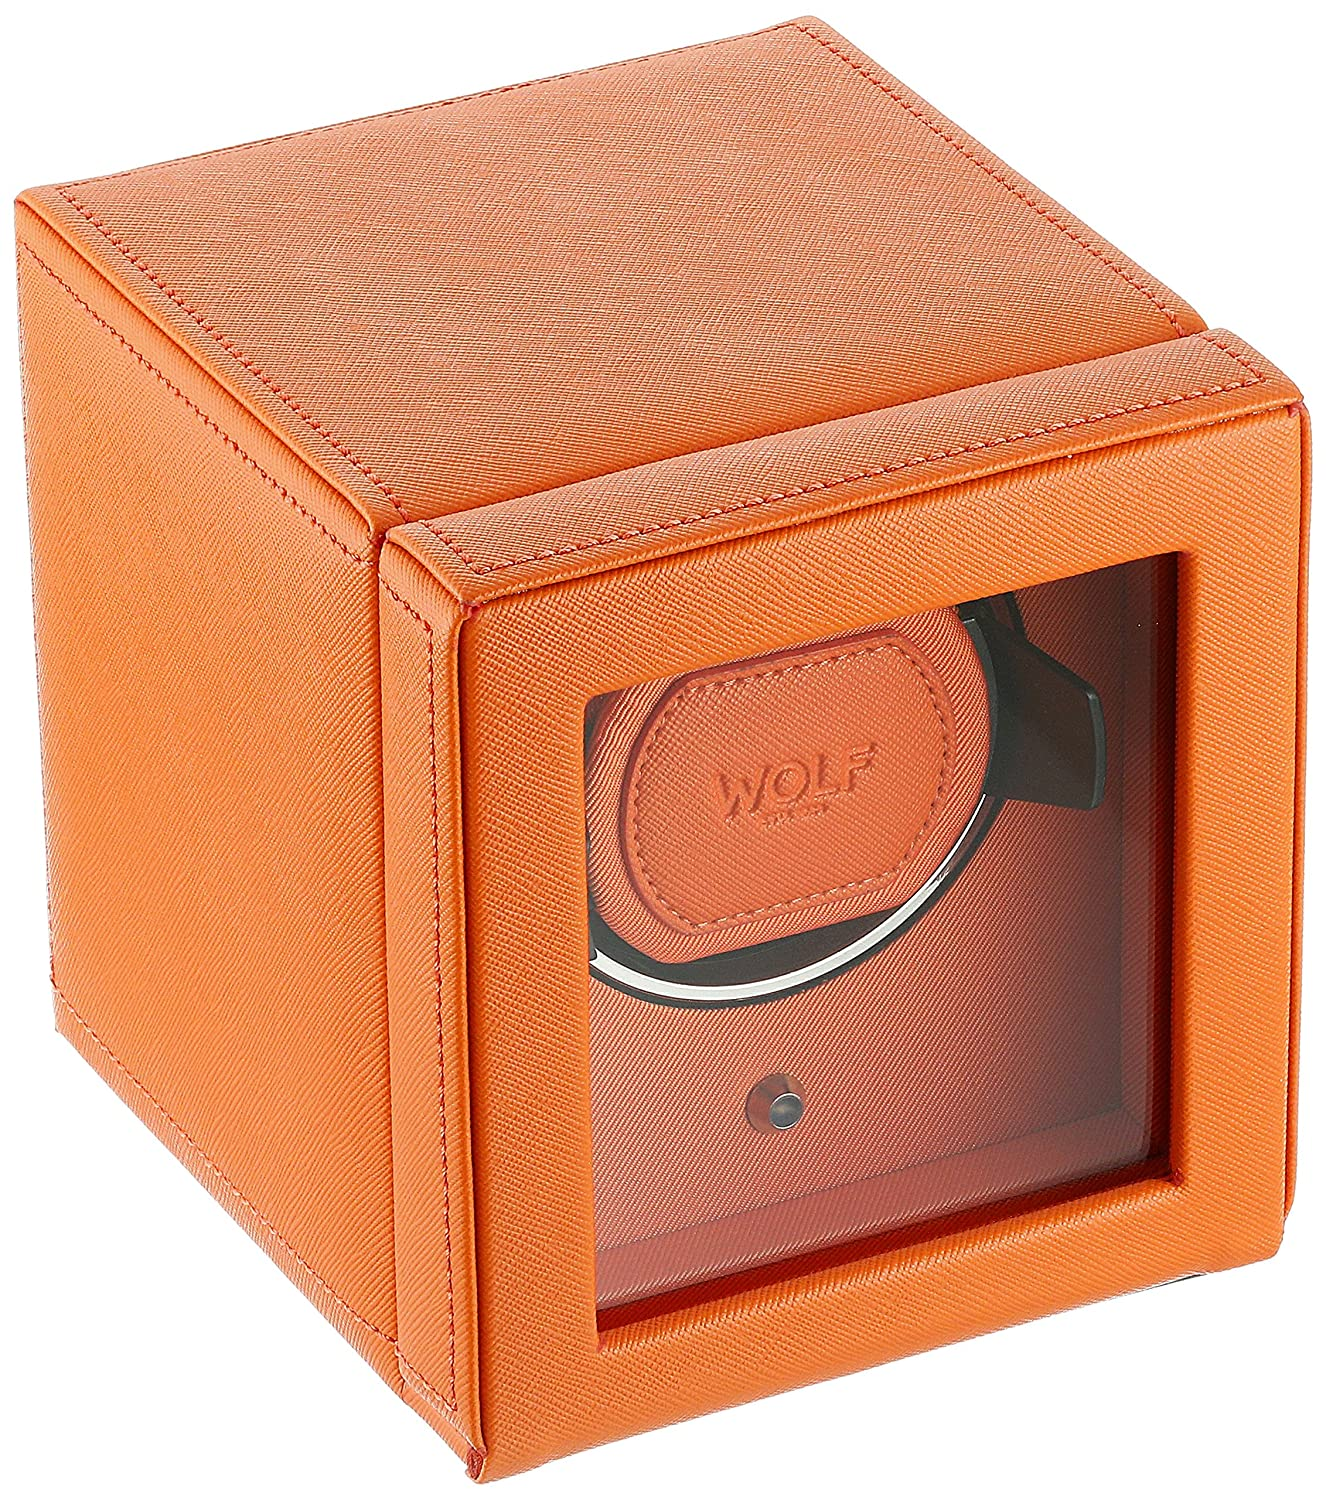 Wolf Cub Winder With Cover - 461139 Orange